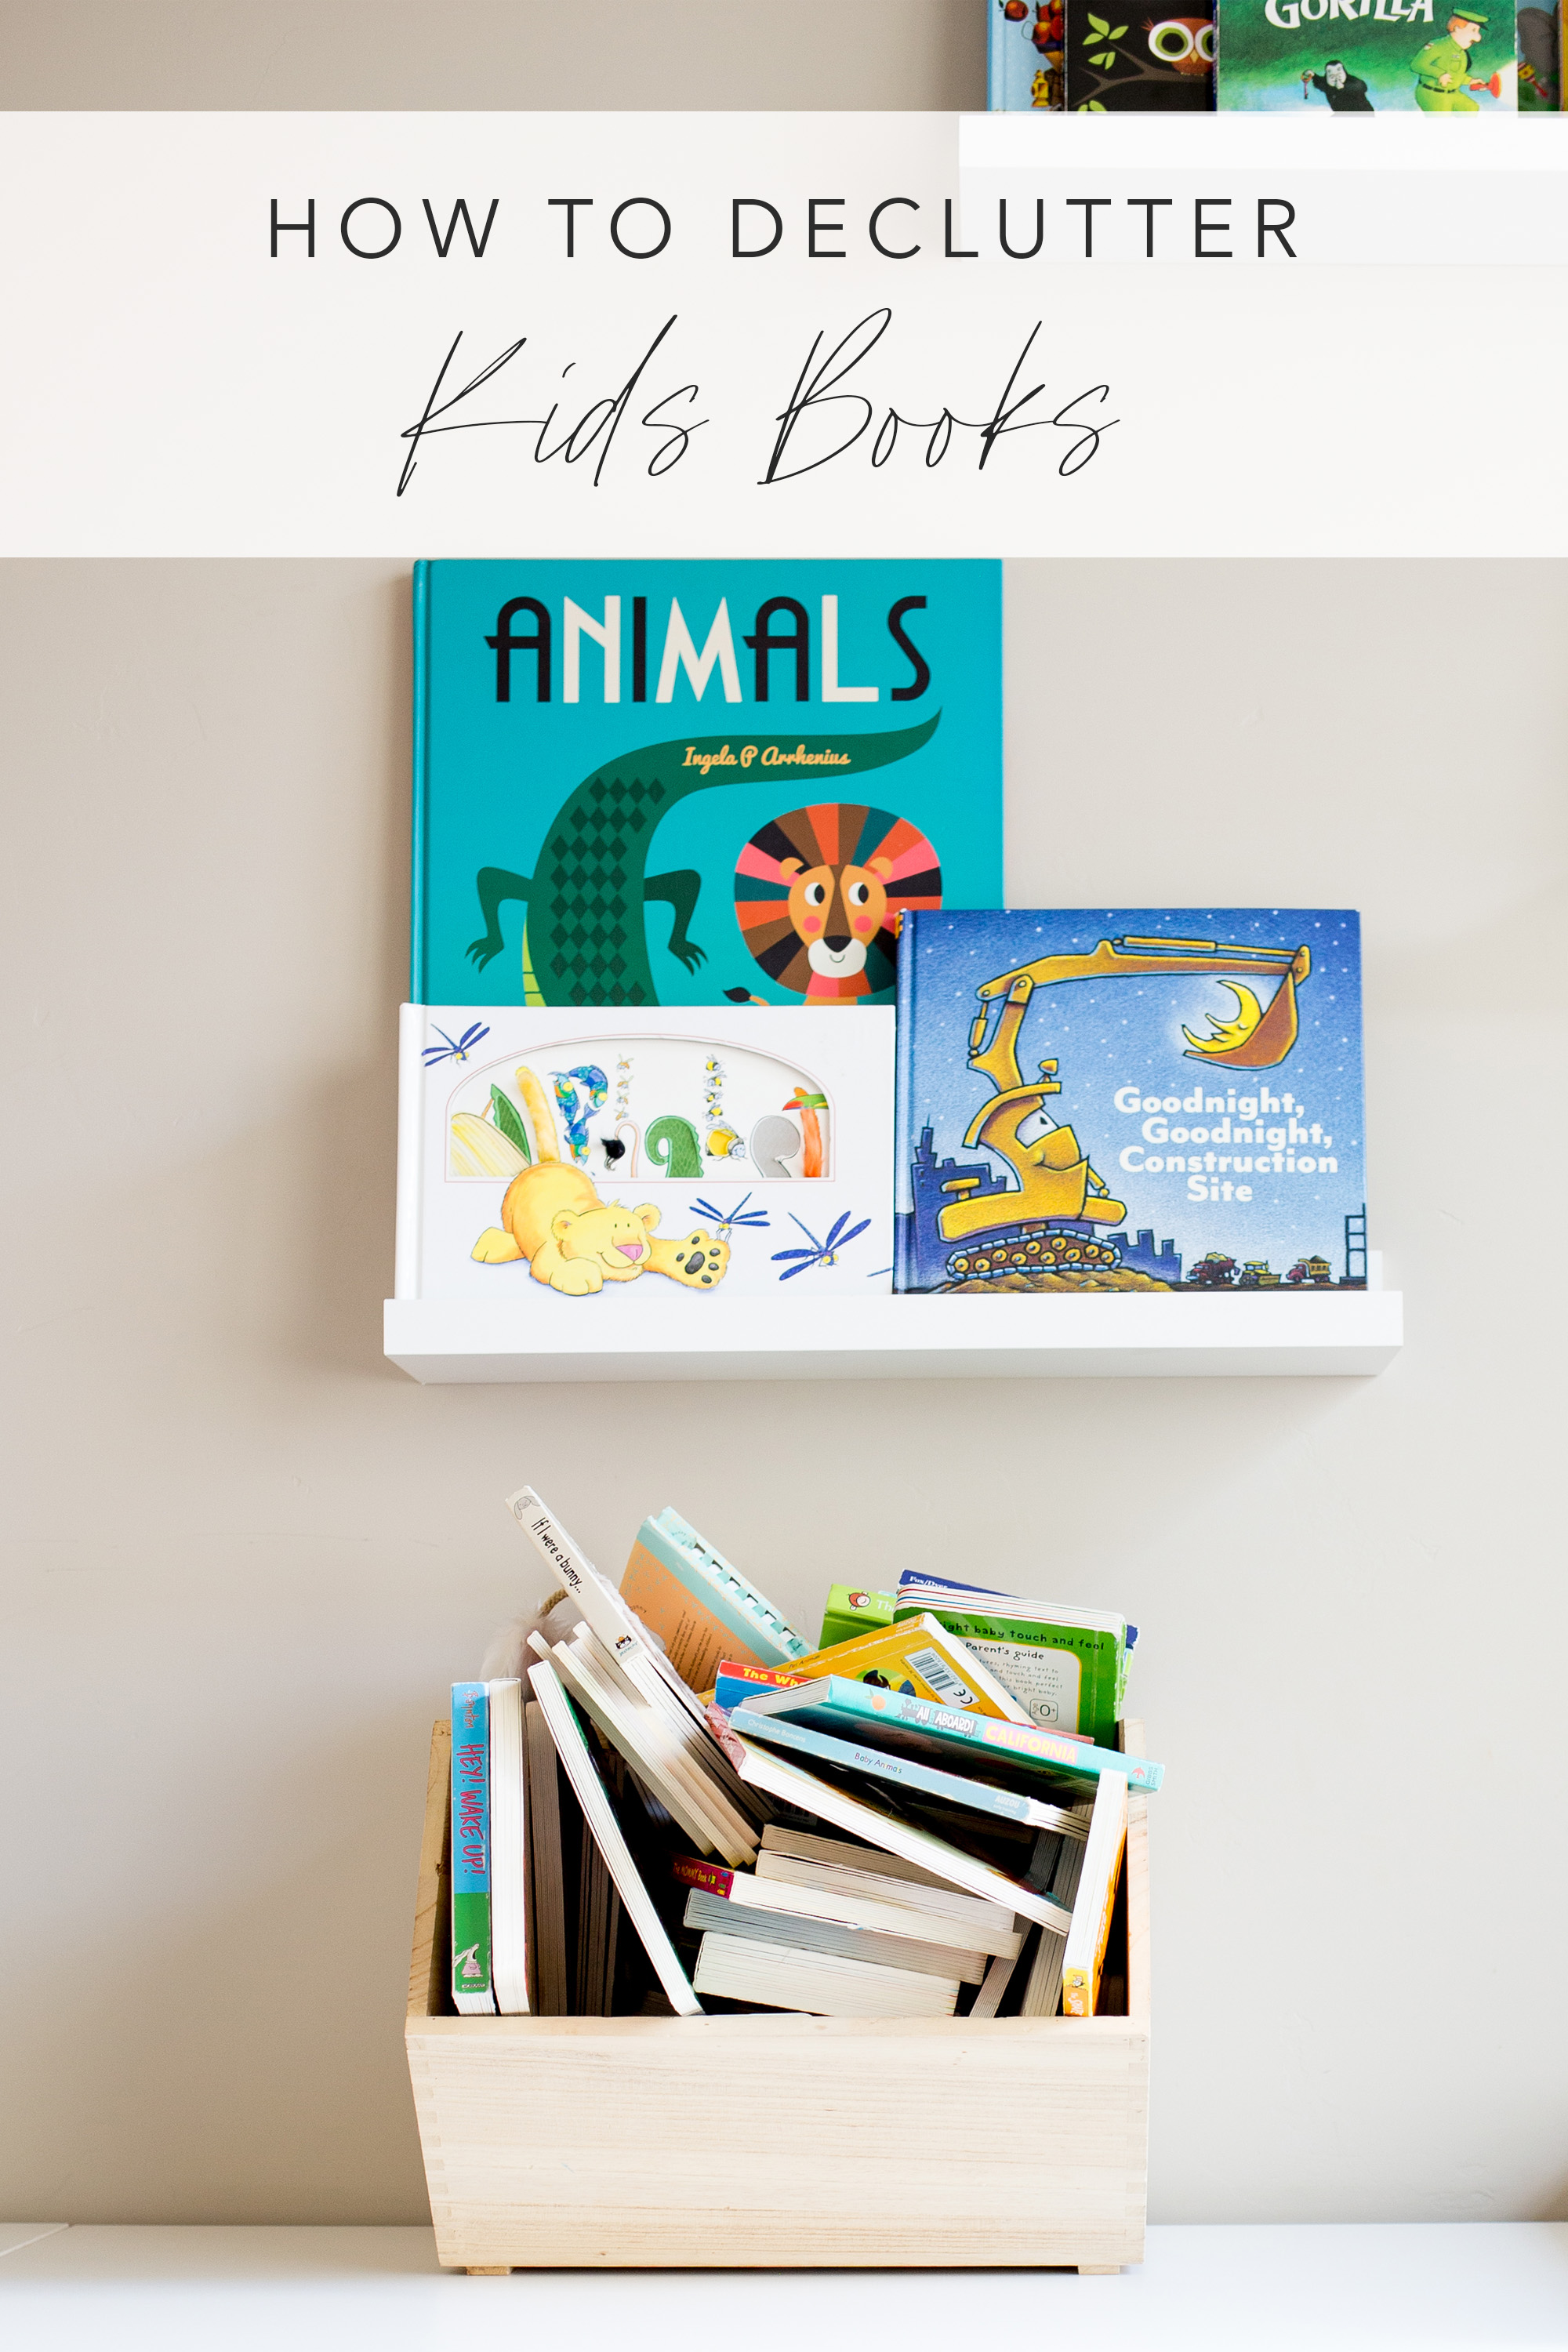 how to declutter kids books image with text